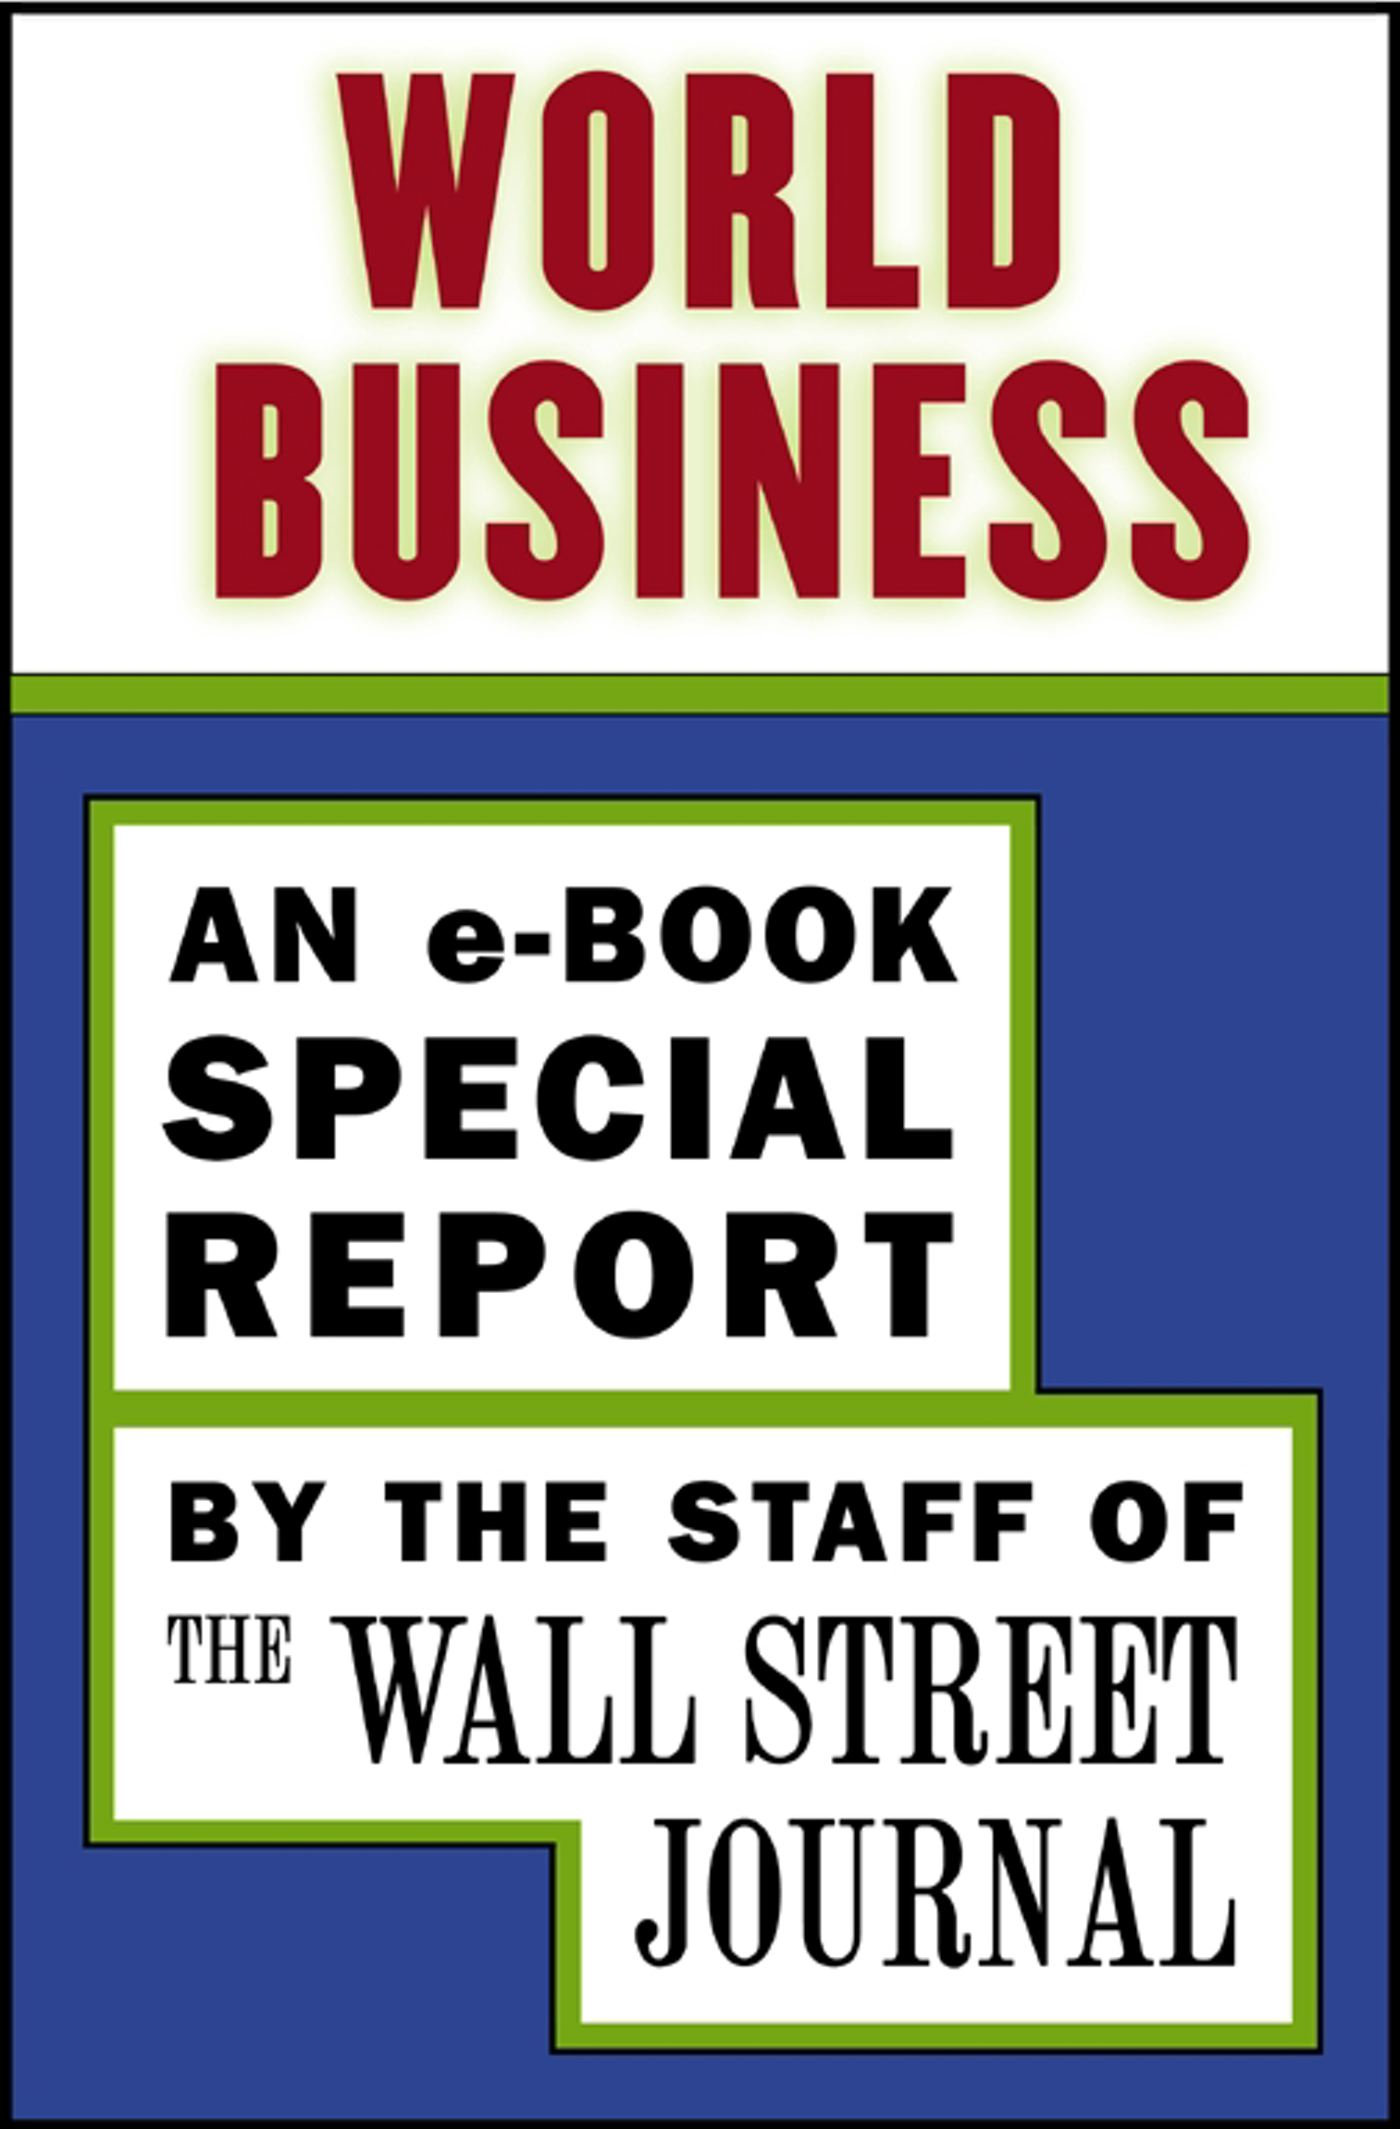 world business ebook by the staff of the wall street journal rh simonandschuster com Military Medicine Journal Submission journal of world business author guidelines